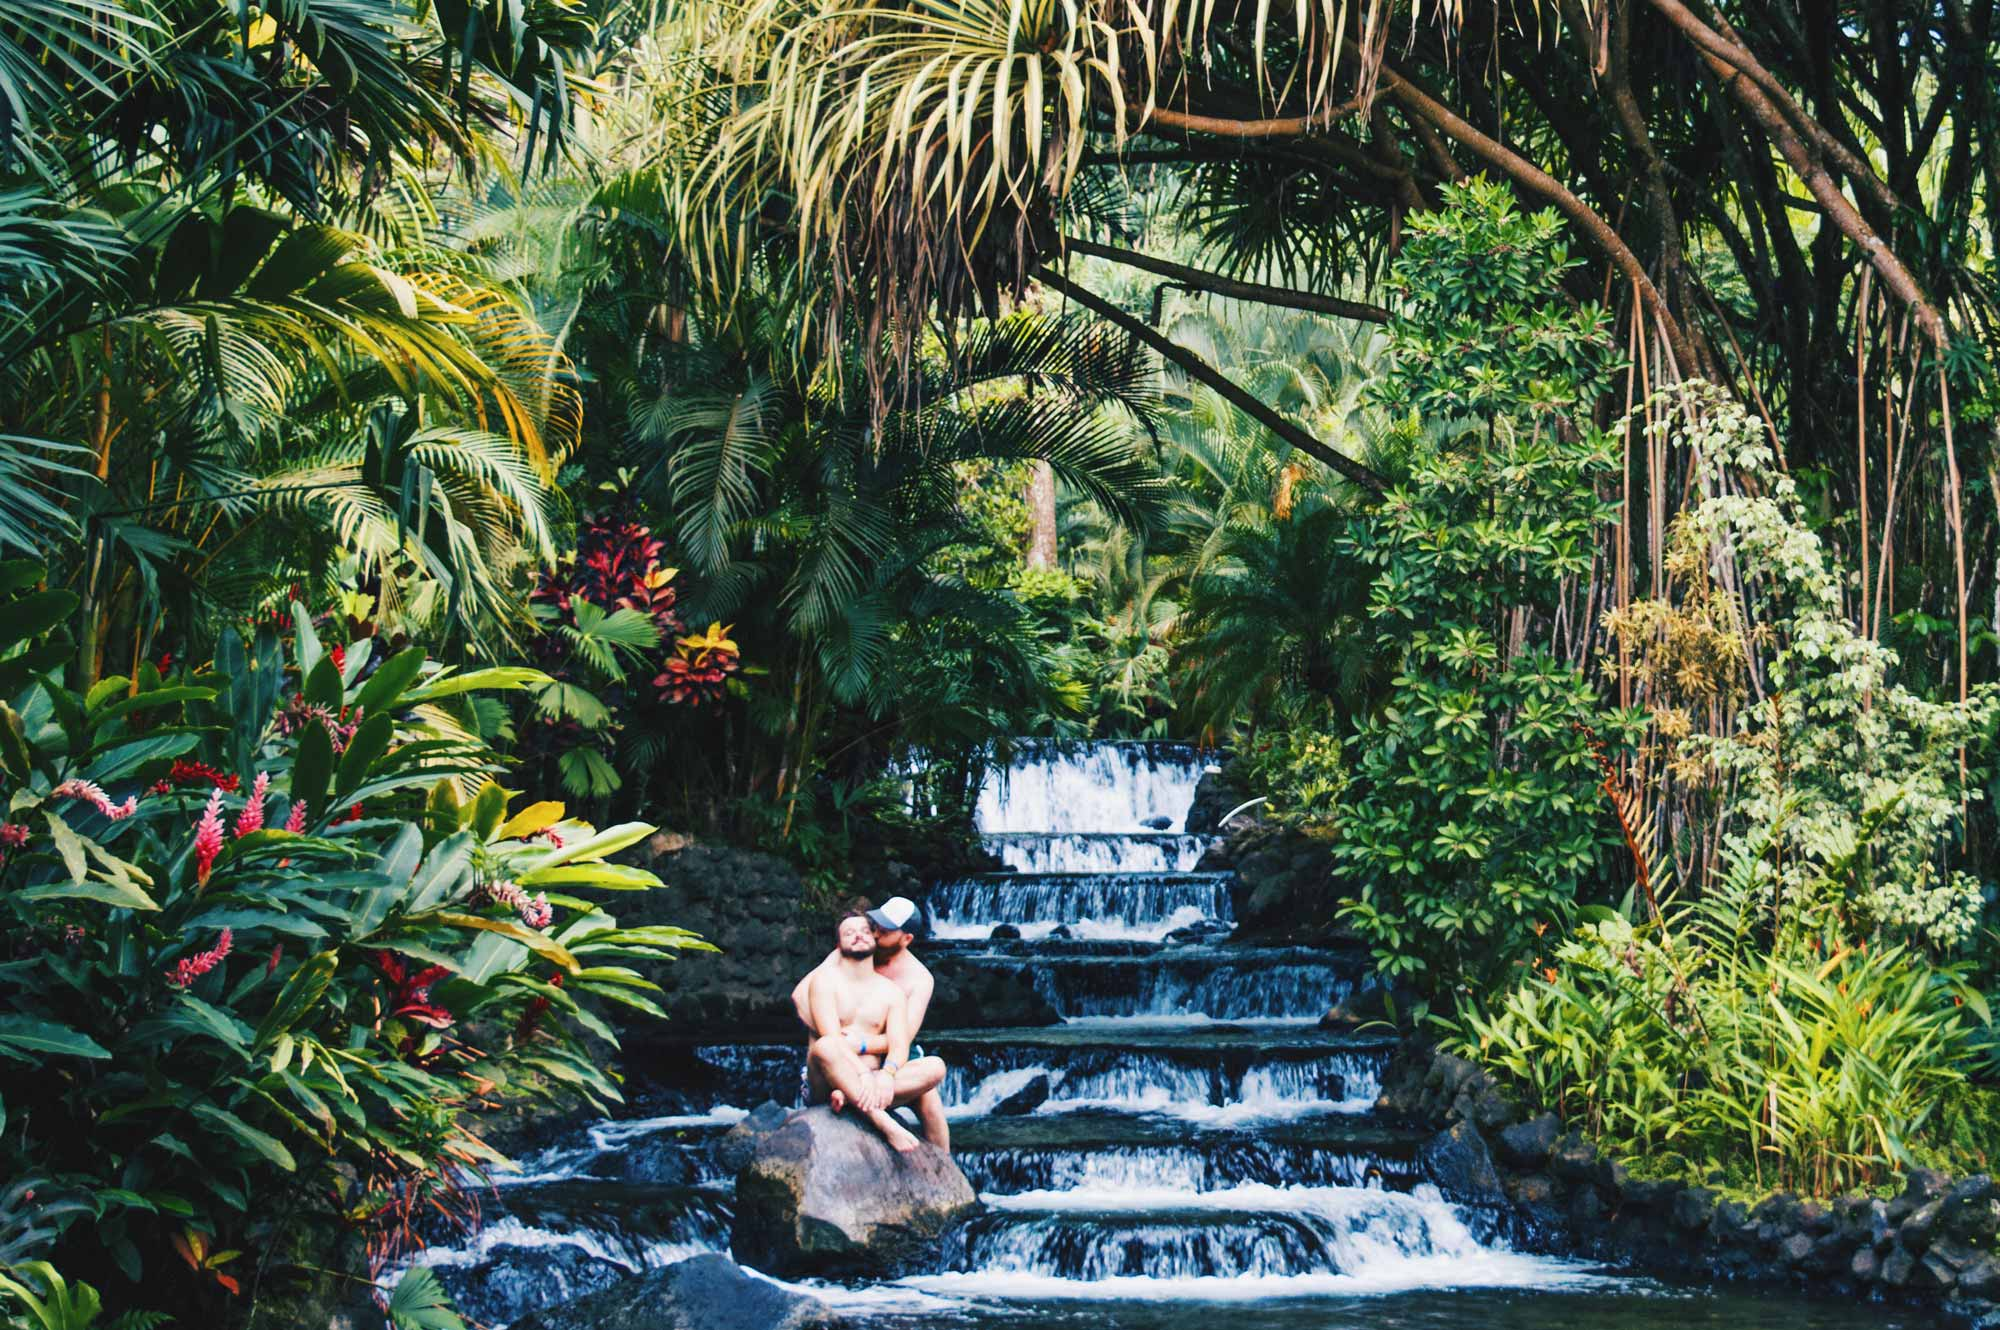 Truly magical nature at gay-friendly Tabacon Hot Springs Resort & Spa | Gay-friendly Costa Rica © Coupleofmen.com